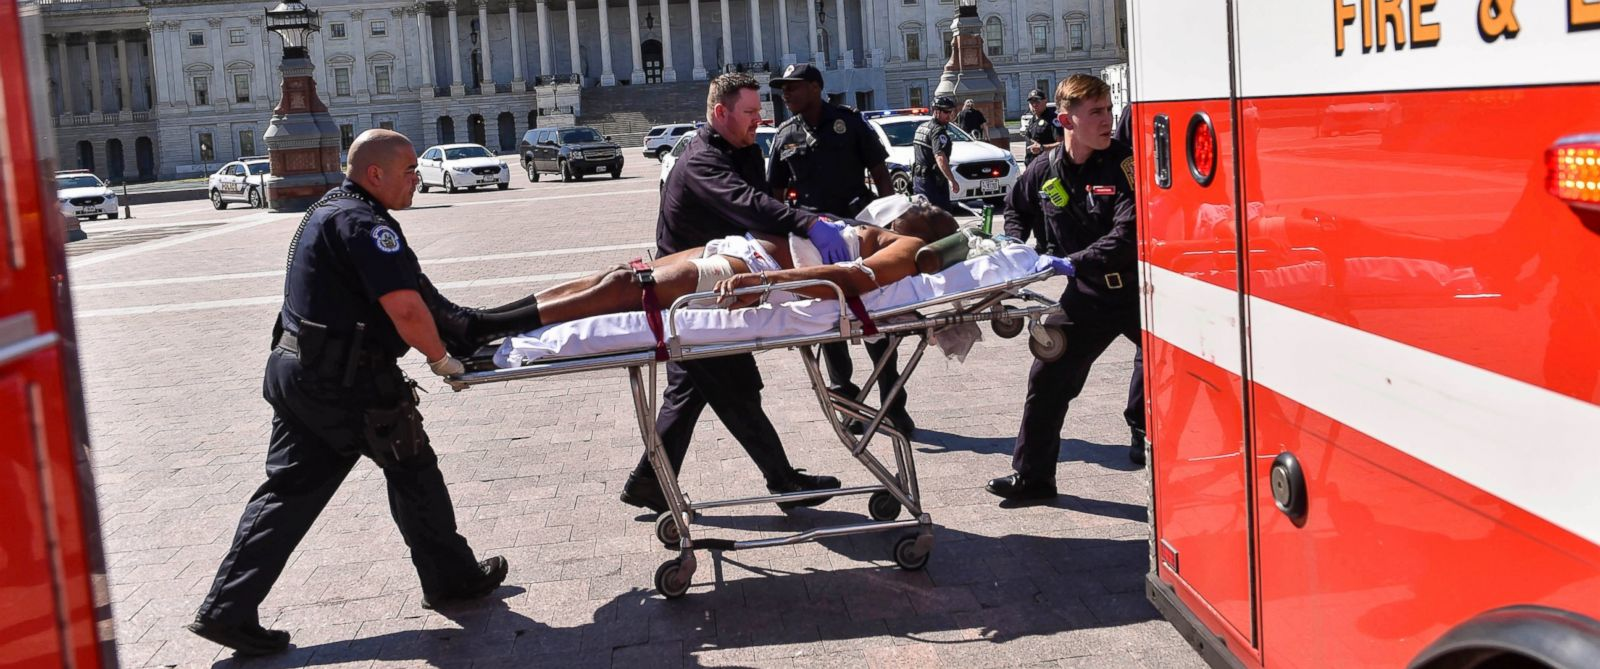 PHOTO: Police and EMS personnel transport the person believed to be the gunman away from the shooting scene at the U.S. Capitol Visitor Center, March 28, 2016, in Washington.